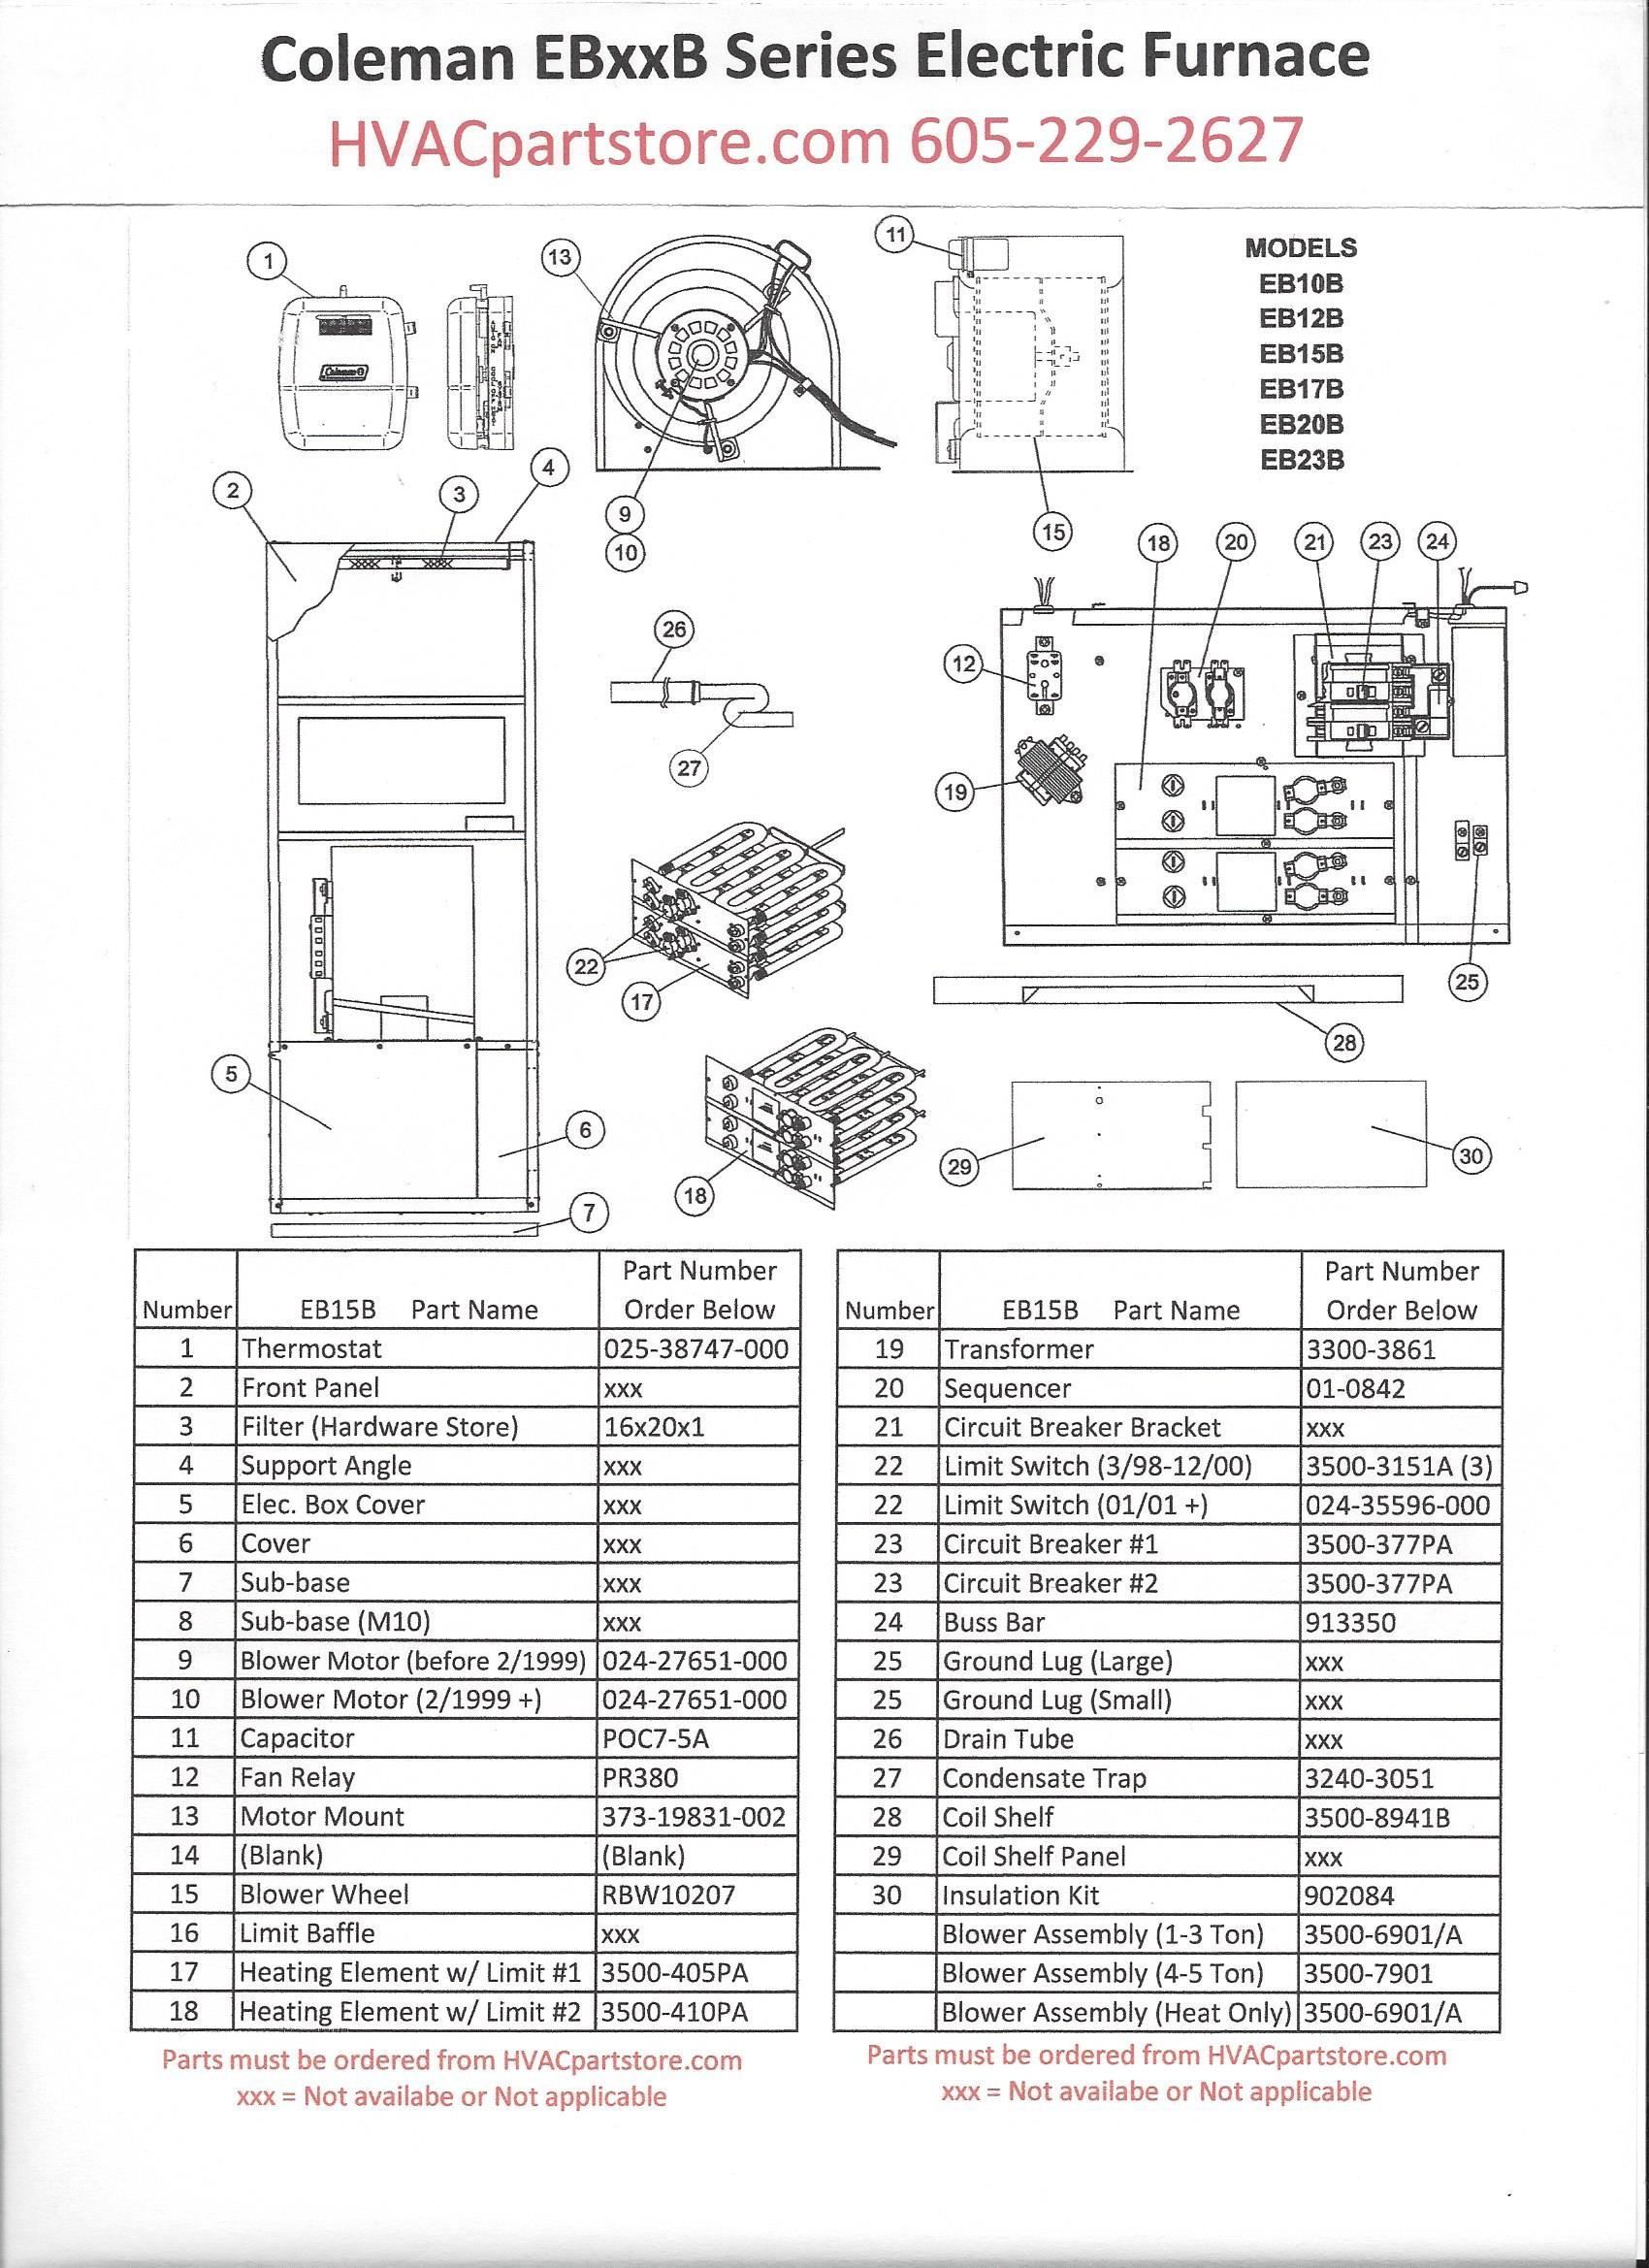 Water Heater Connections Diagram